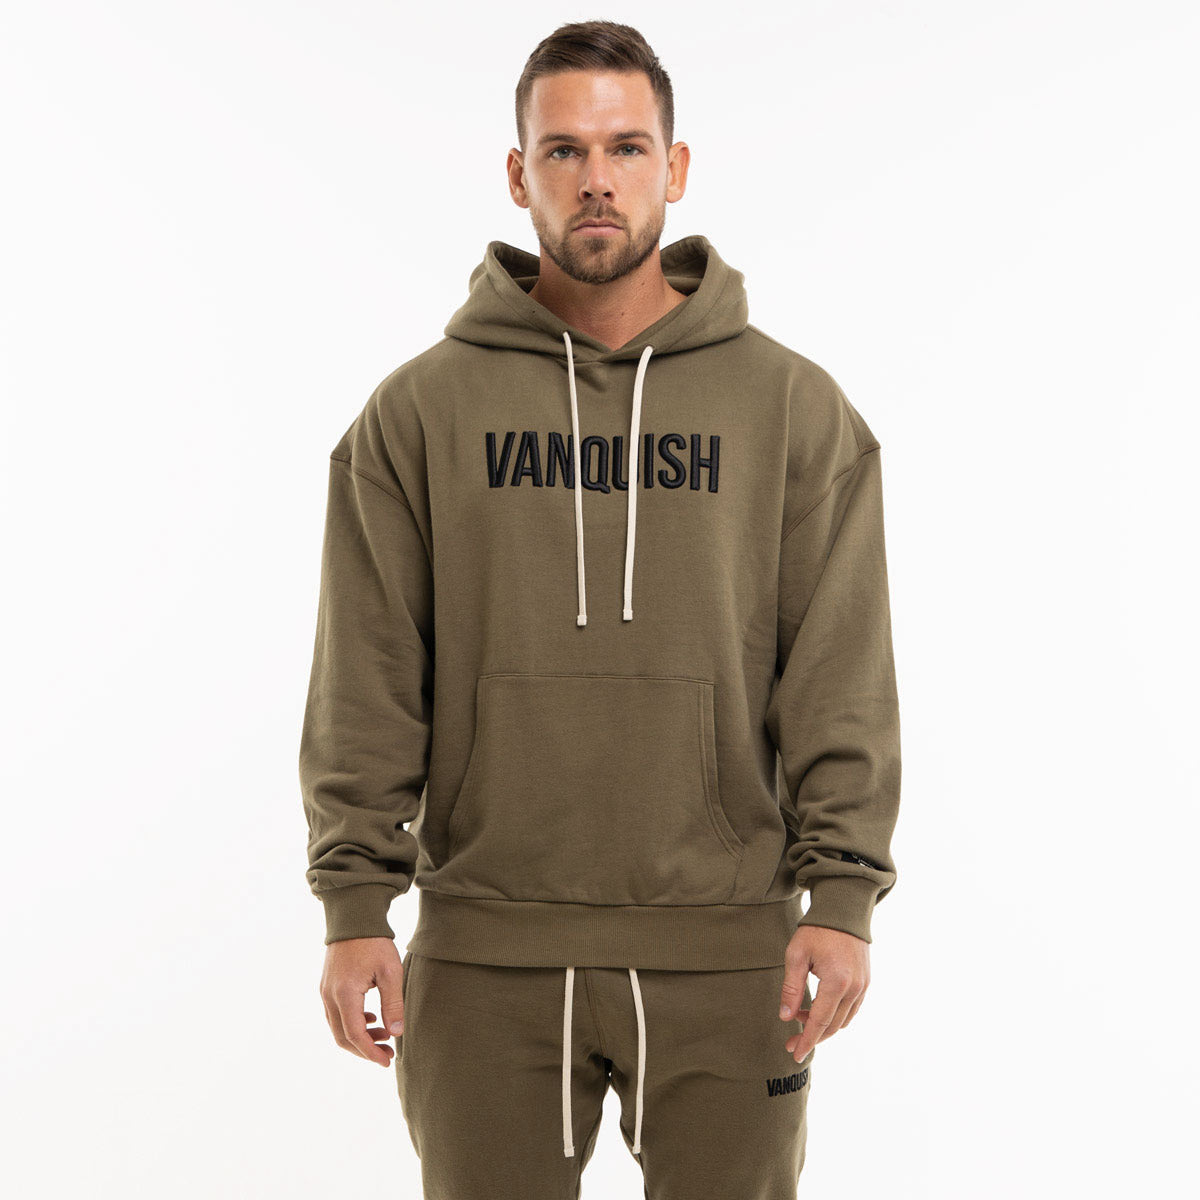 Vanquish Warm Up Project Olive Oversized Hoodie